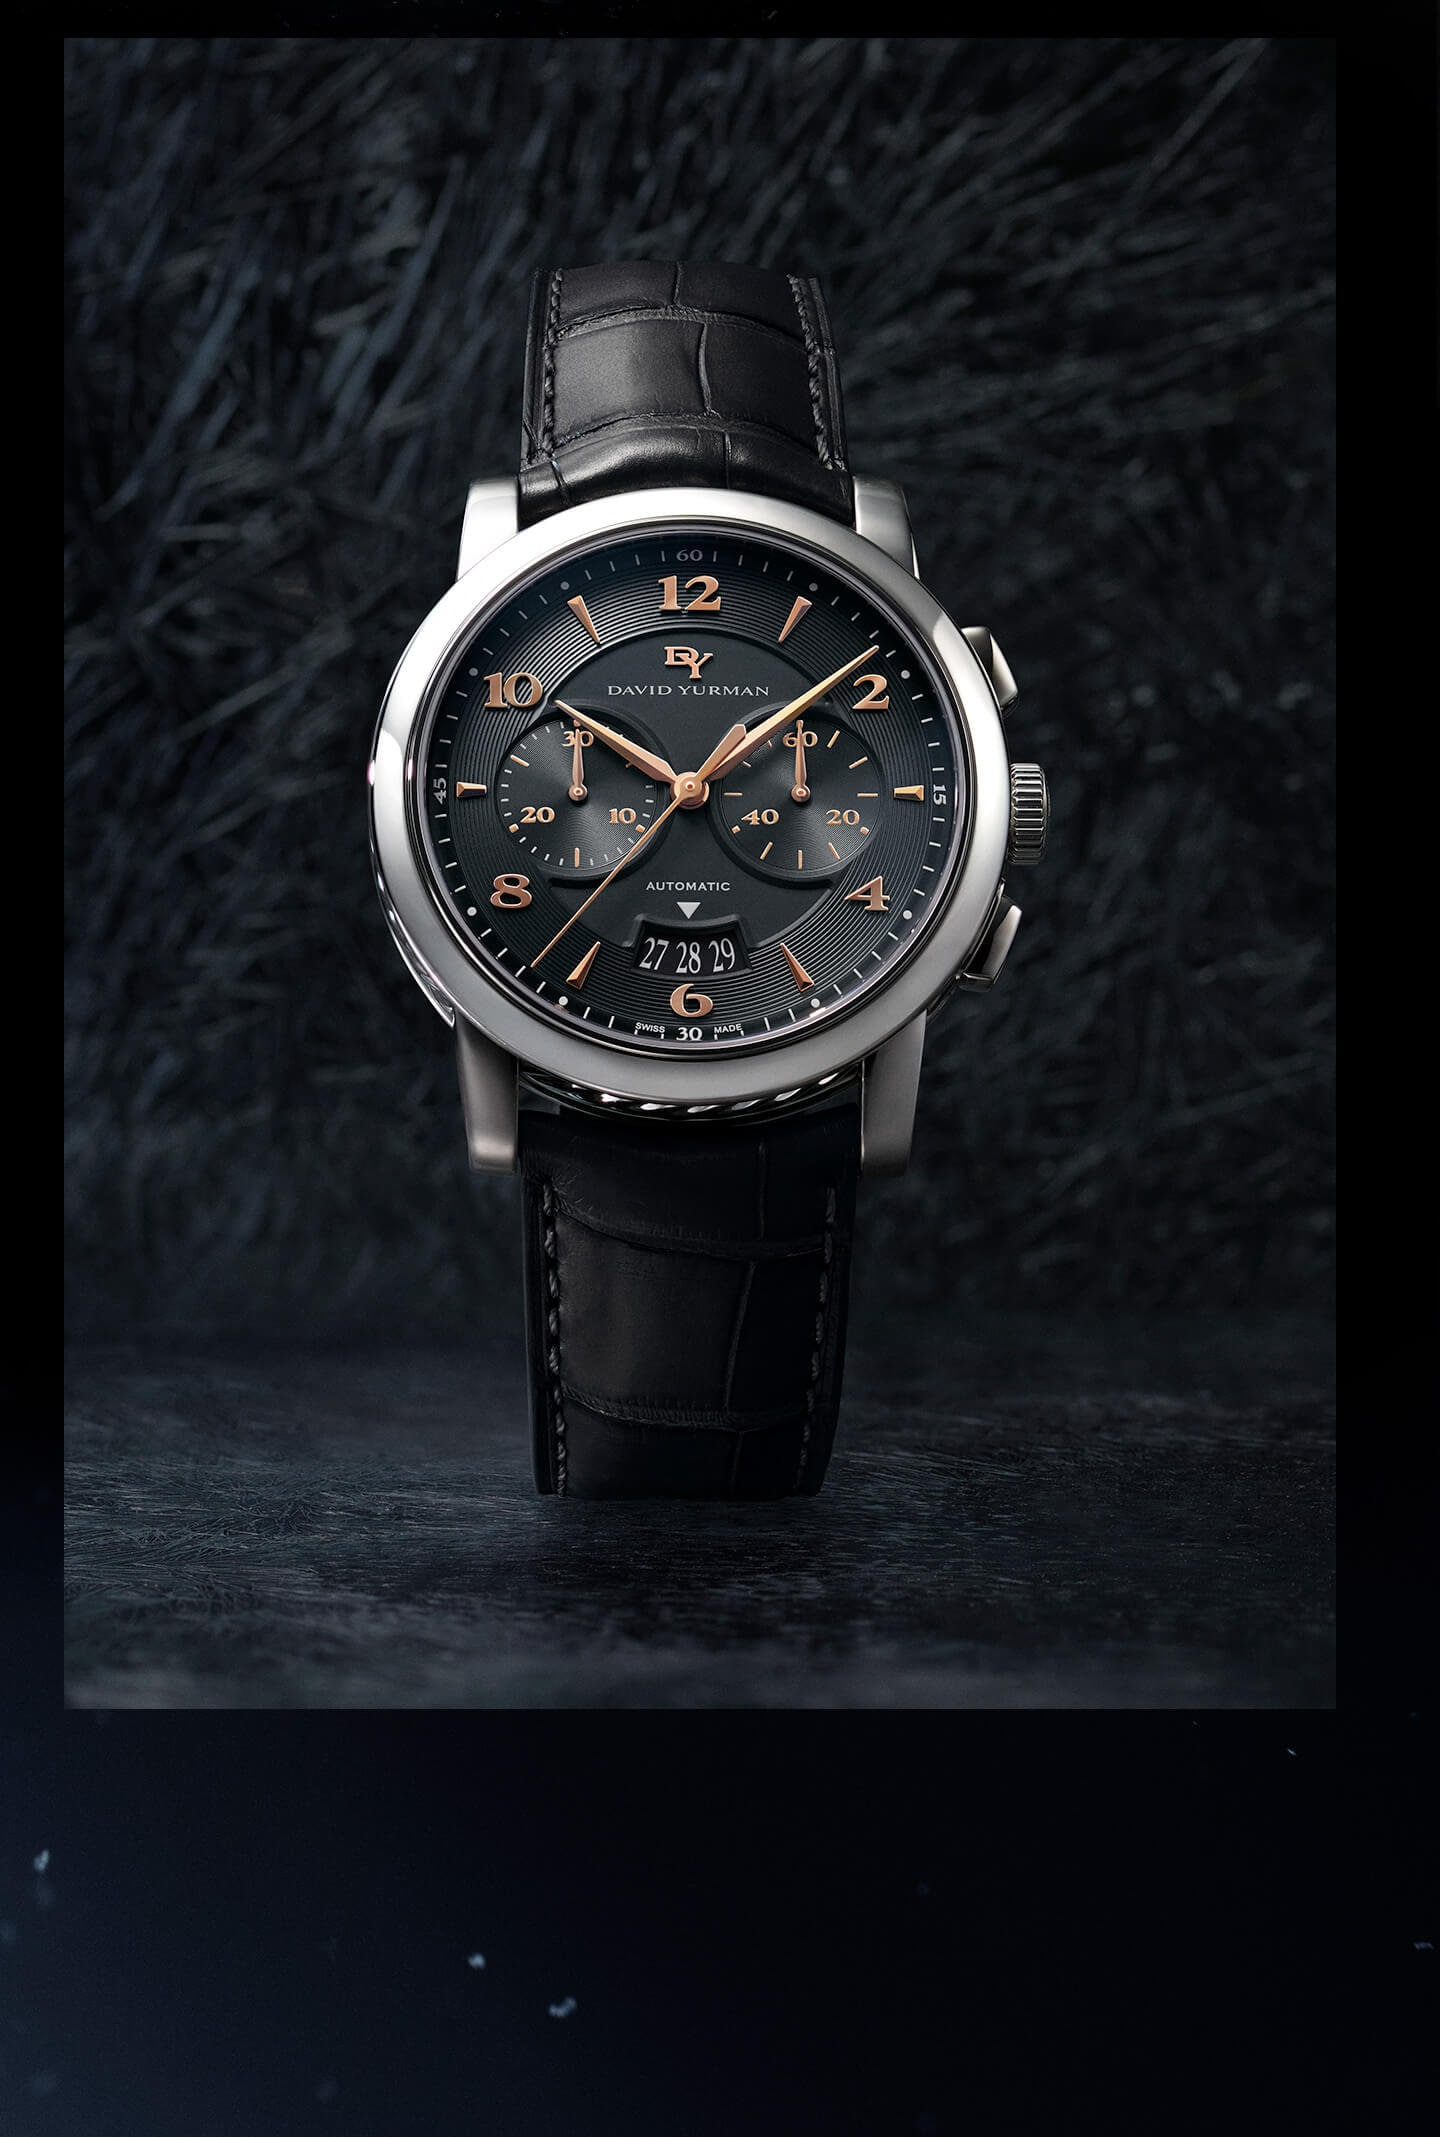 A color photo shows a David Yurman men's Classic 43.5mm chronograph watch standing upright atop and in front of dark, rough, scratched and icy surfaces. The timepiece is crafted with an anthracite matte alligator strap and a Cable-detailed stainless-steel case featuring a Swiss automatic chronograph movement.